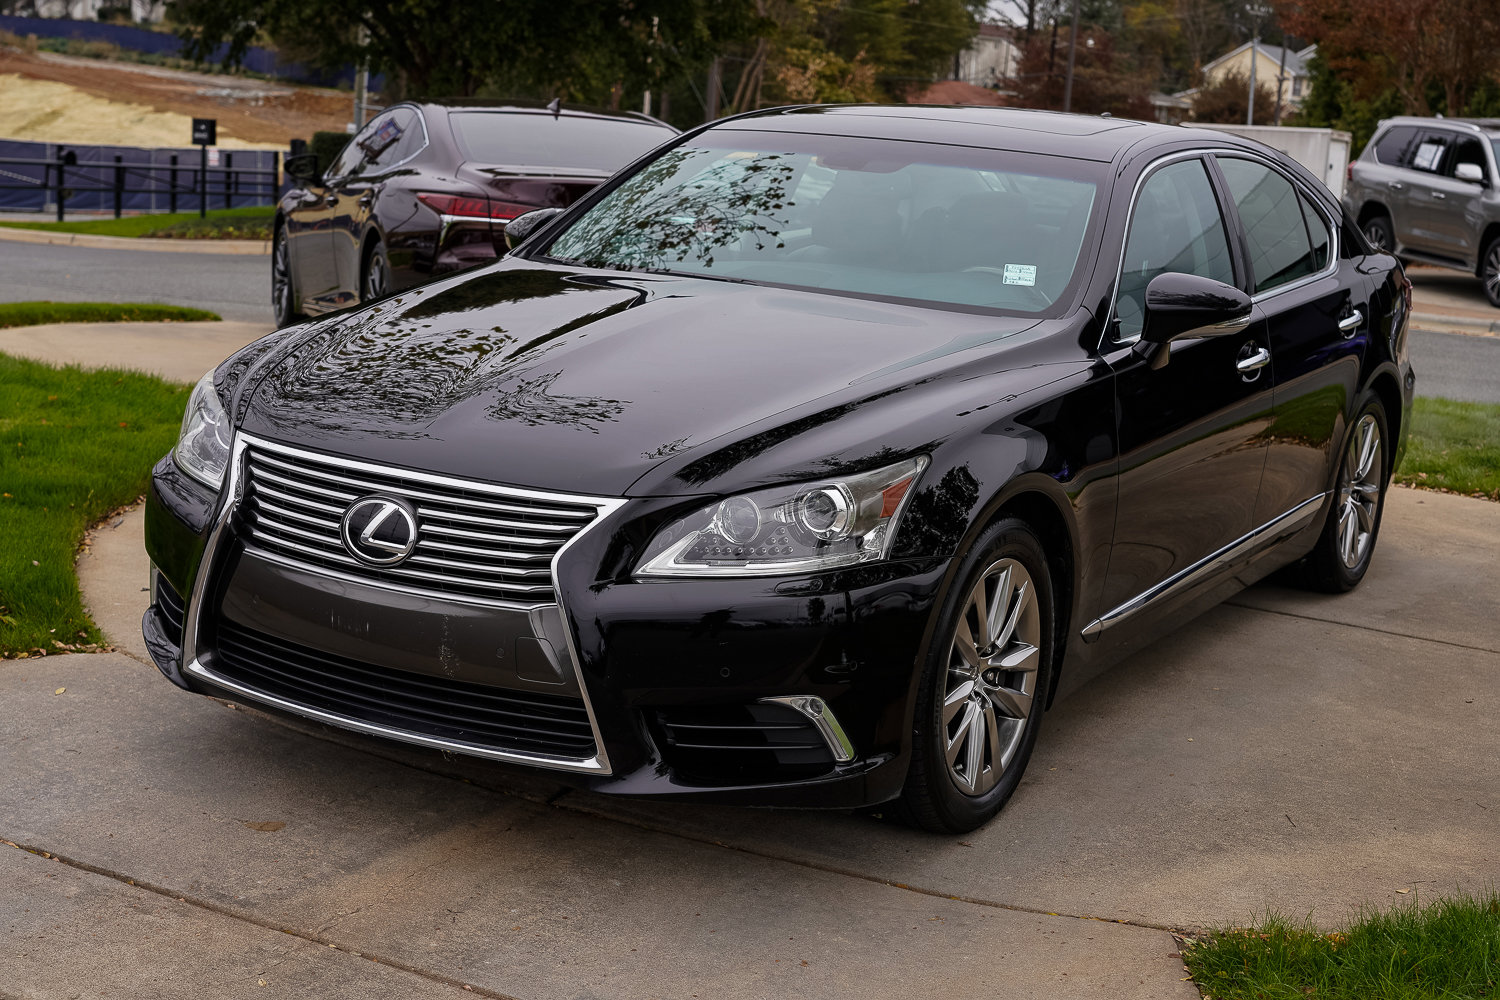 Pre-Owned 2014 Lexus LS 460 4dr Sdn AWD